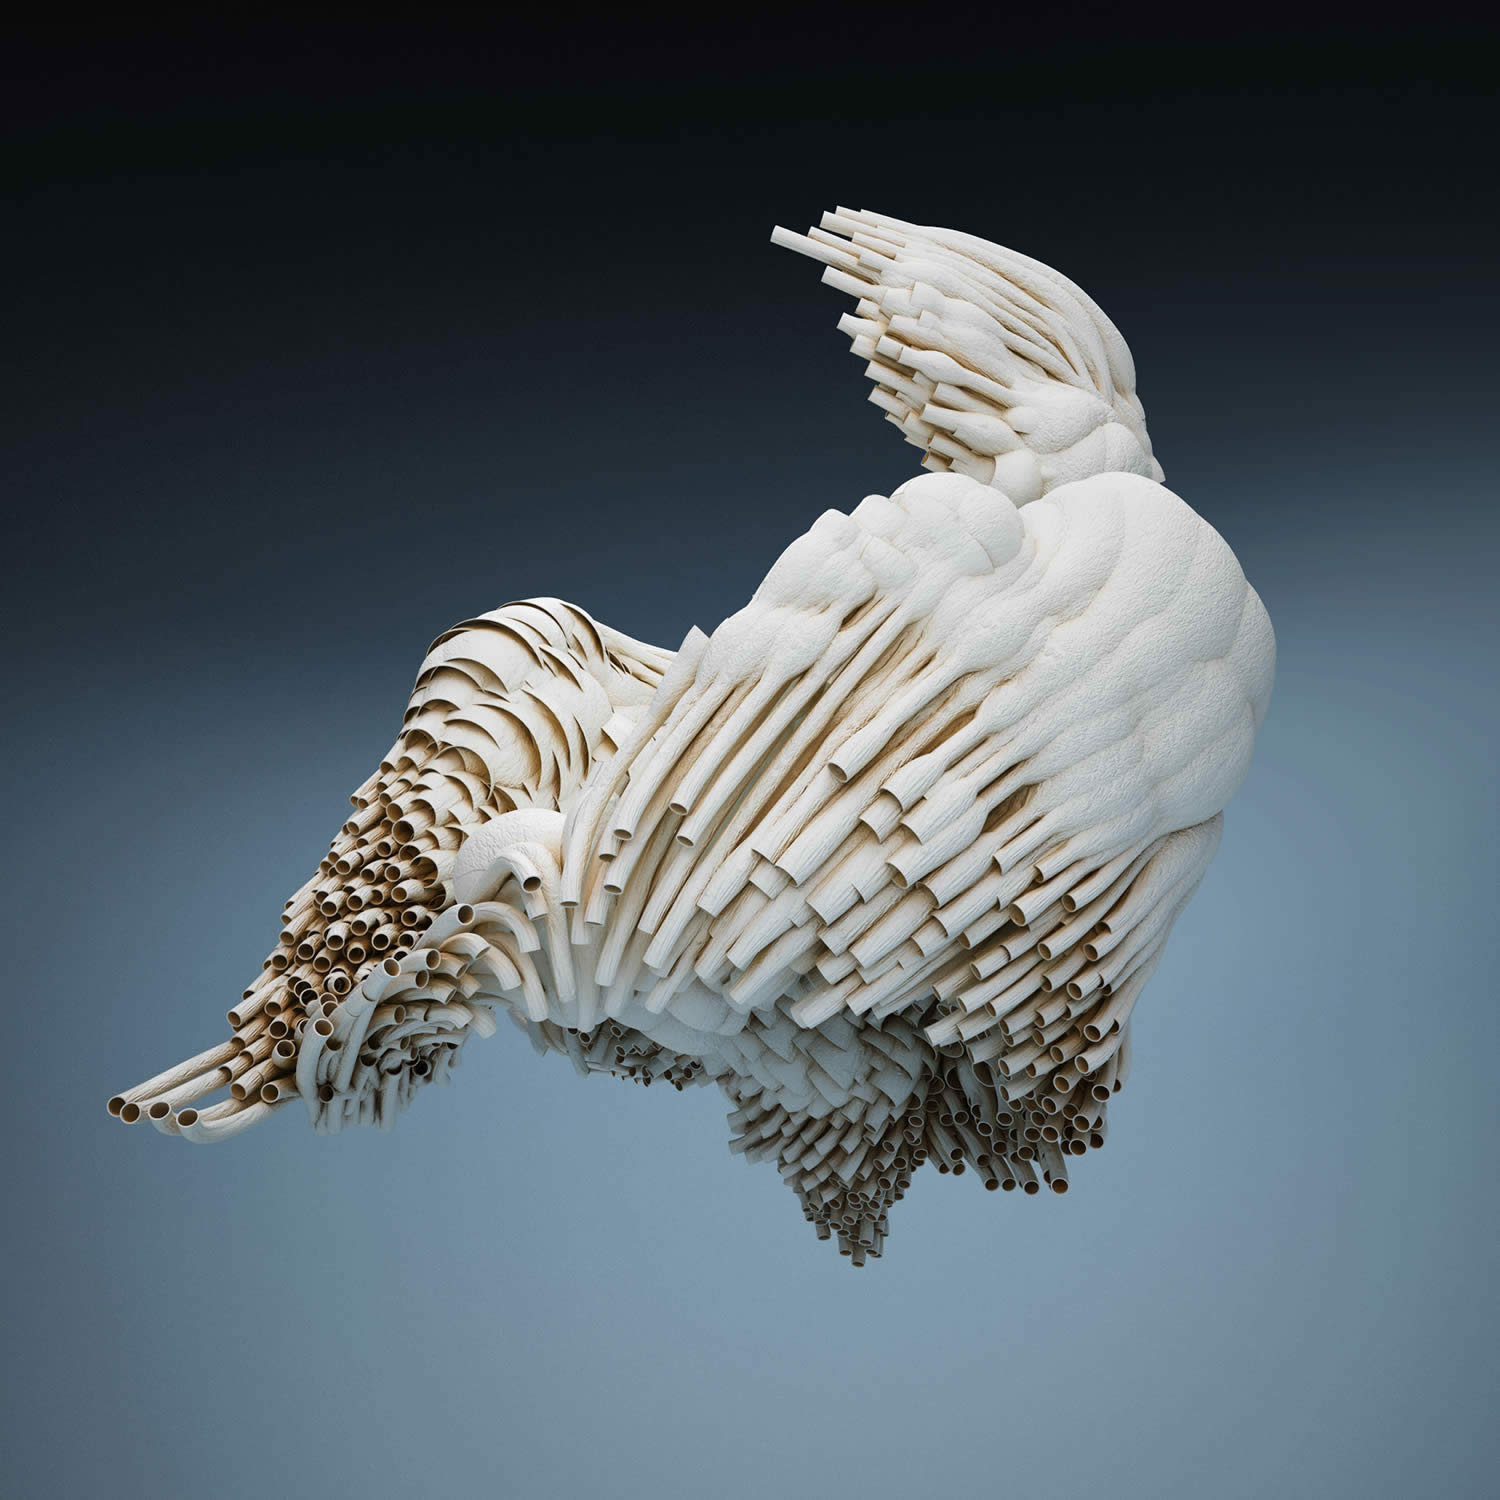 white sculptural art (3d) by David McLeod